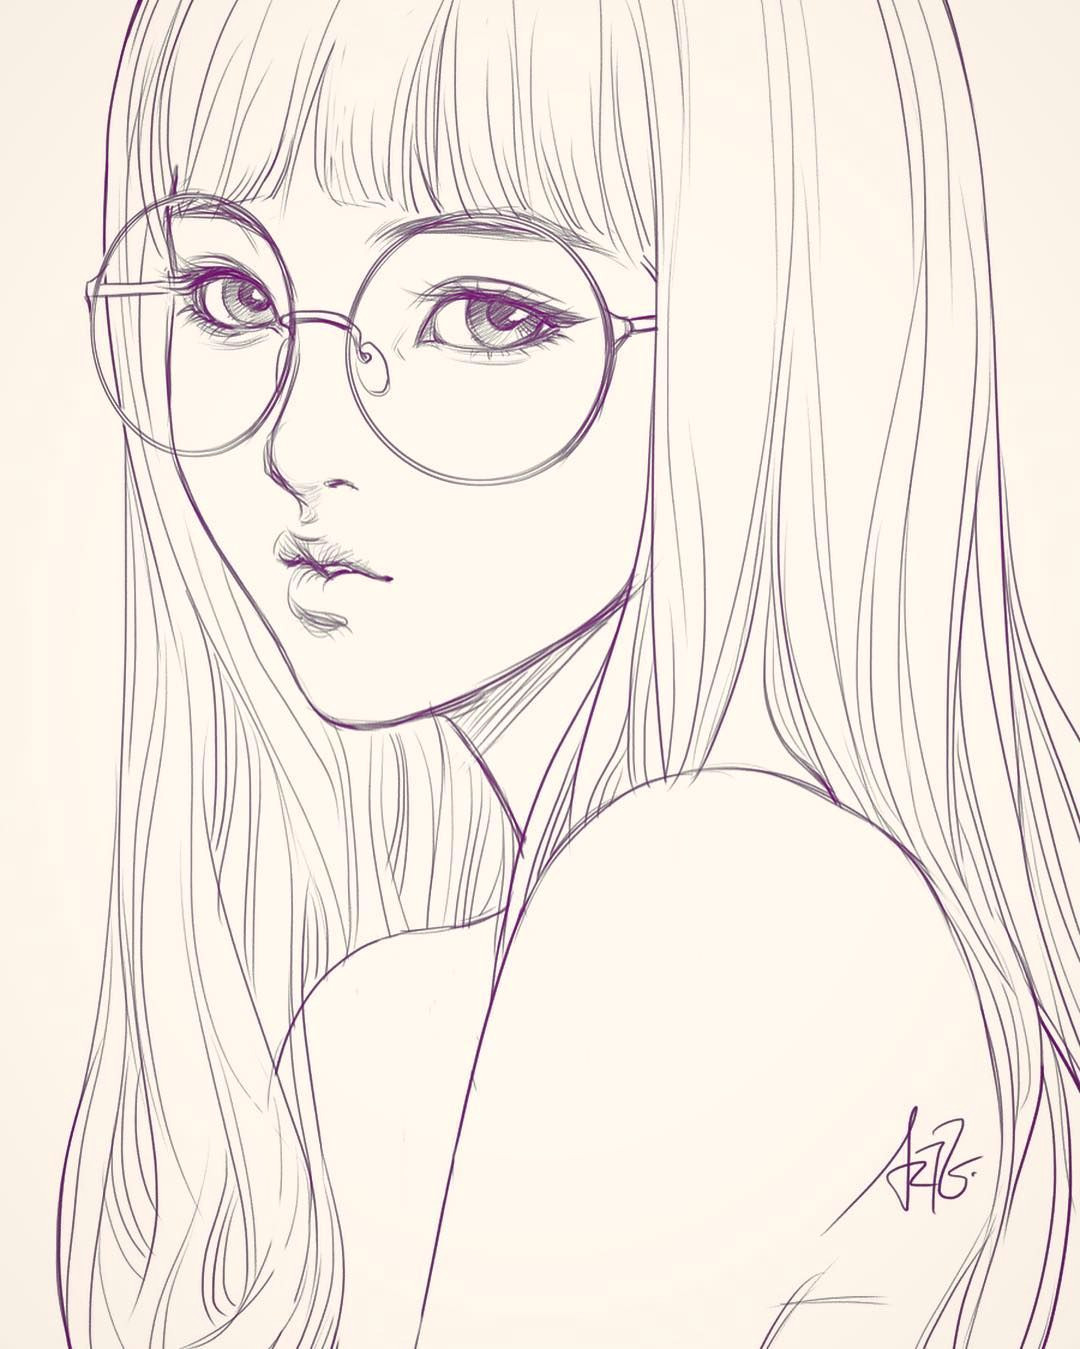 Drawing Of A Healthy Girl Last Sketch Of Girl with Glasses Having Bad Backache It Hurts